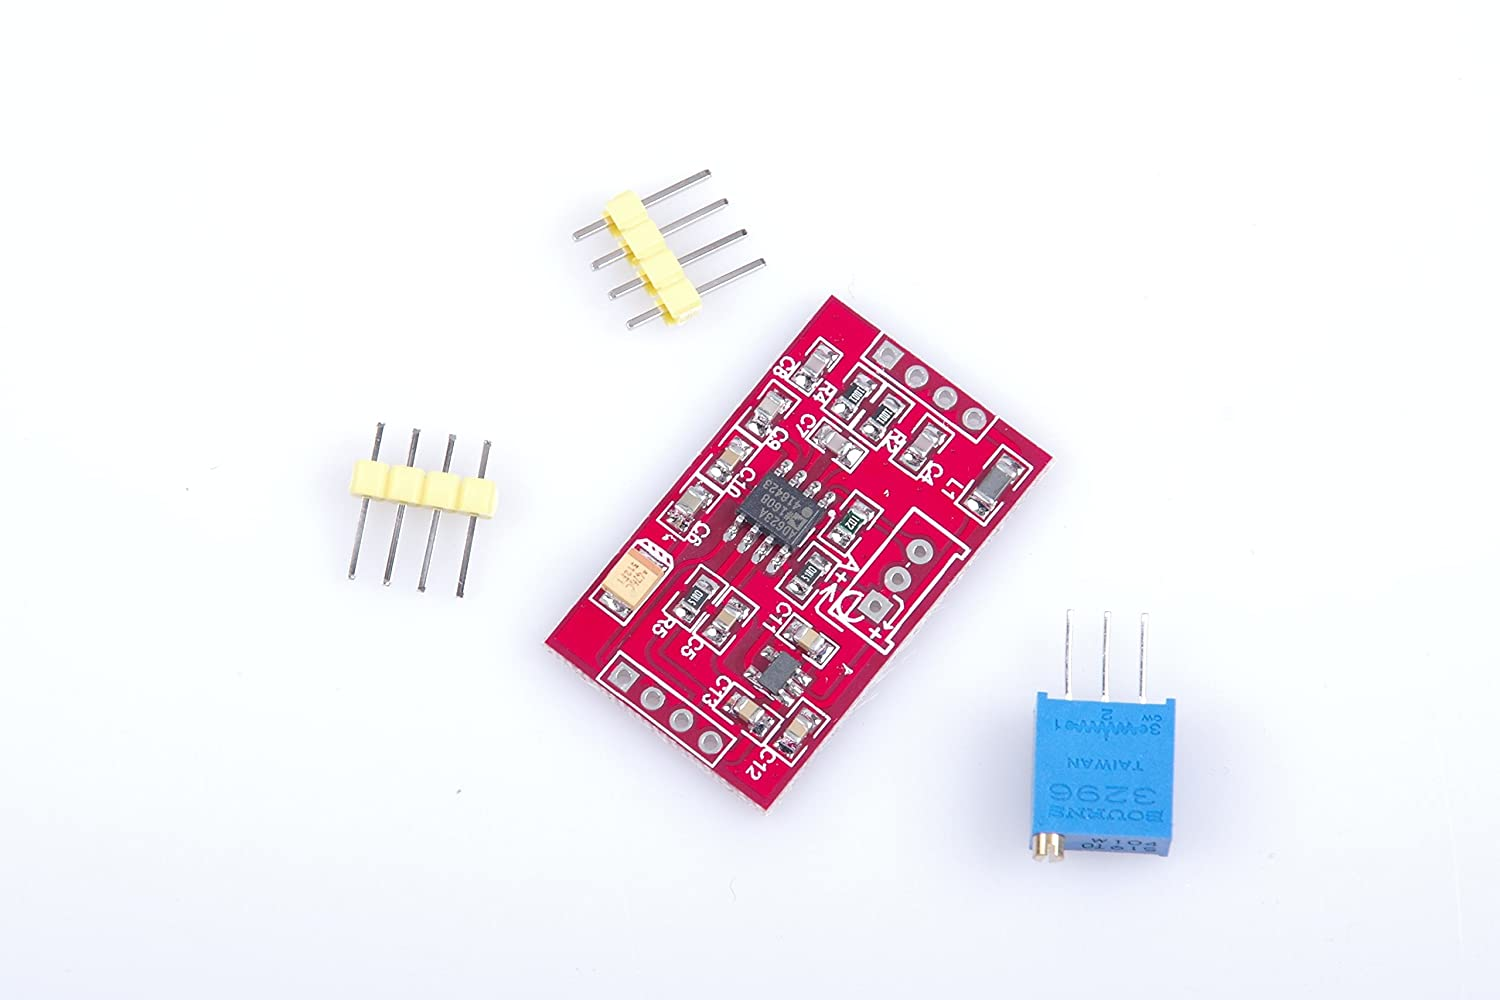 Lm Yn Millivolt Voltage Amplifier Module Ad623 Ad620 Instrumentation Problem Of Noise With Load Cell And Microvolt Home Audio Theater